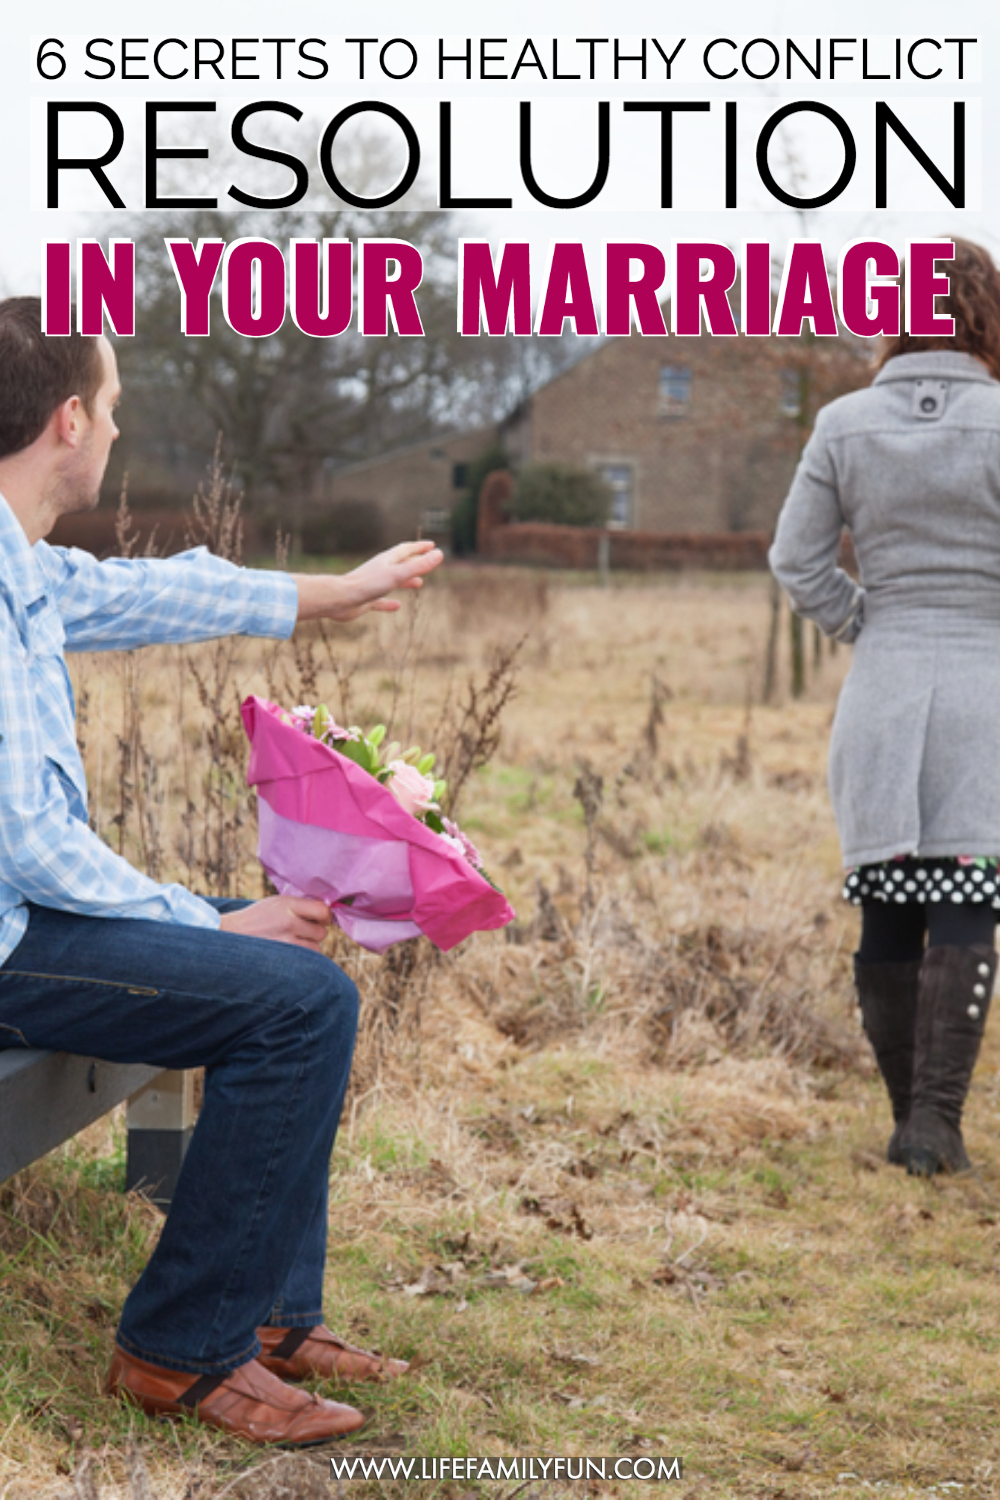 Healthy marriage conflicts